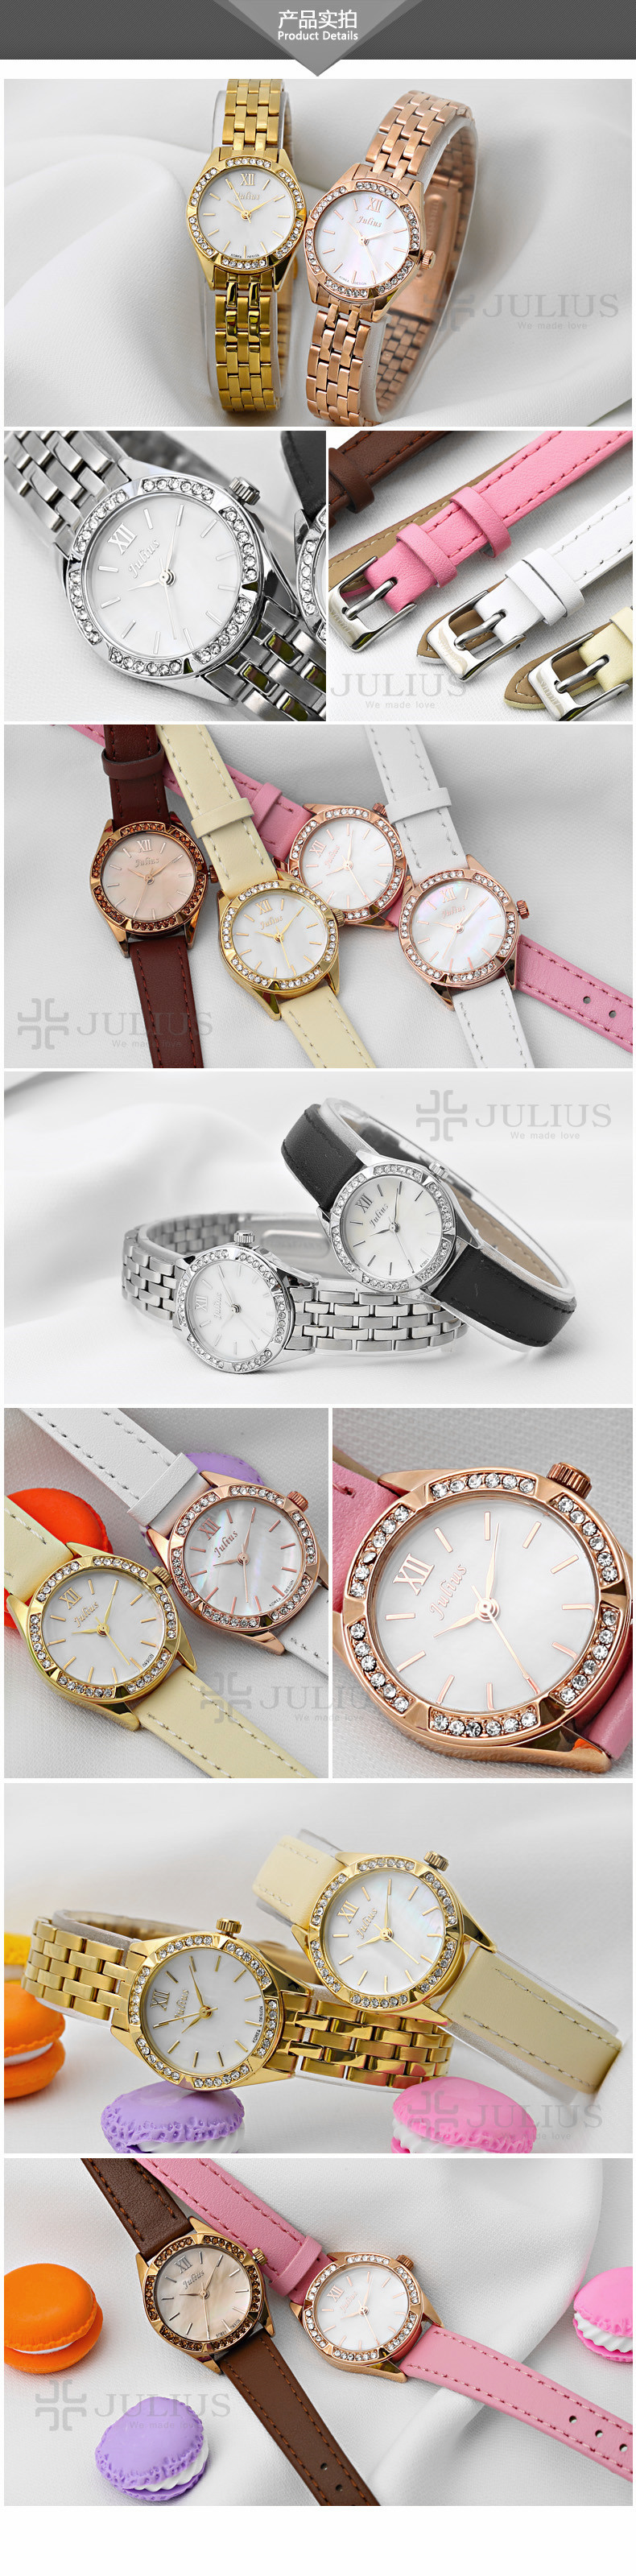 Women's Lady Wrist Watch Julius Quartz Hours New Fashion Dress Bracelet Shell Leather Girl Christmas Birthday Gift 730